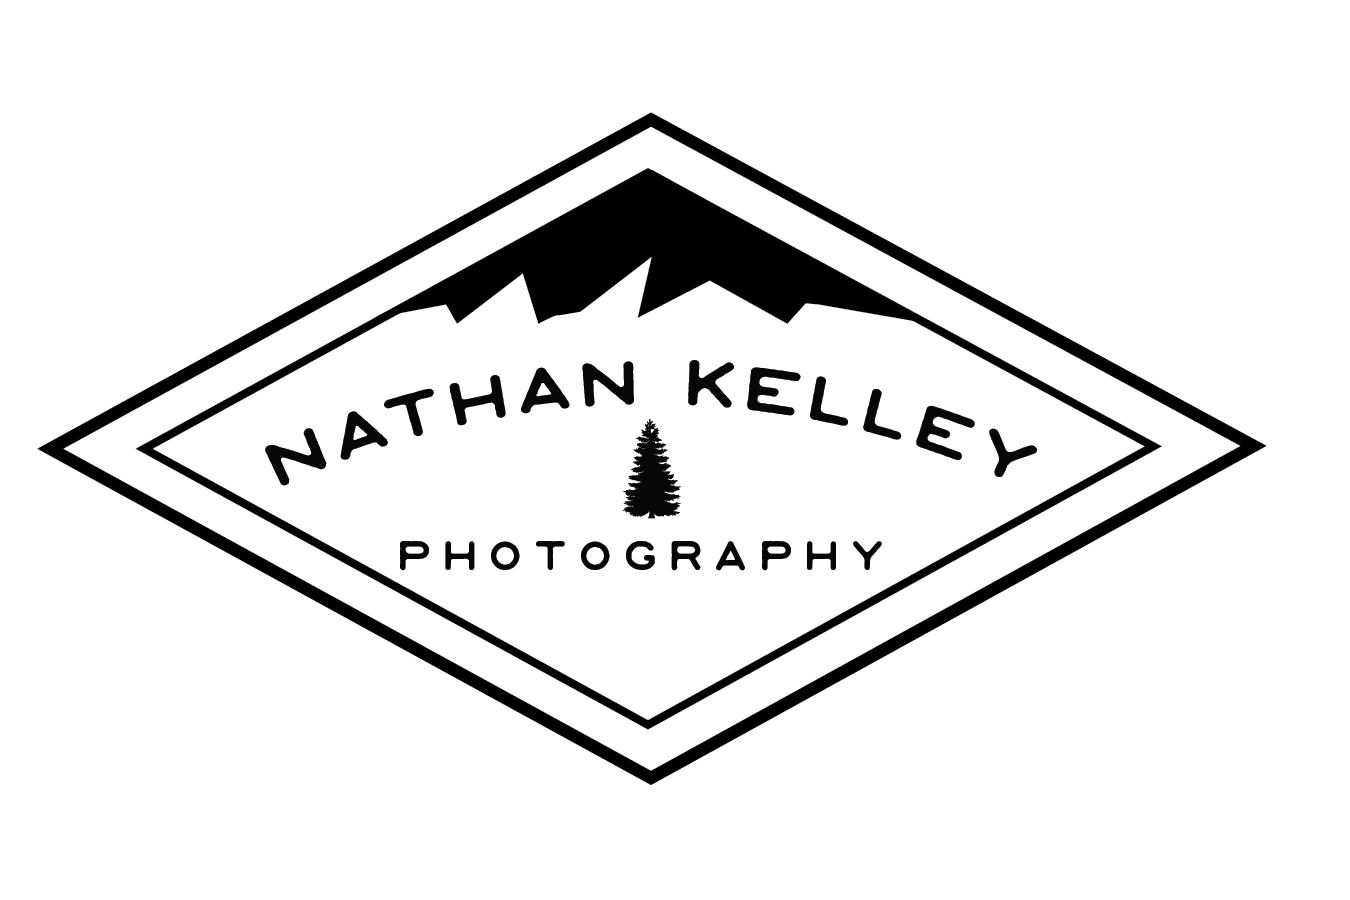 Nathan Kelley Photography